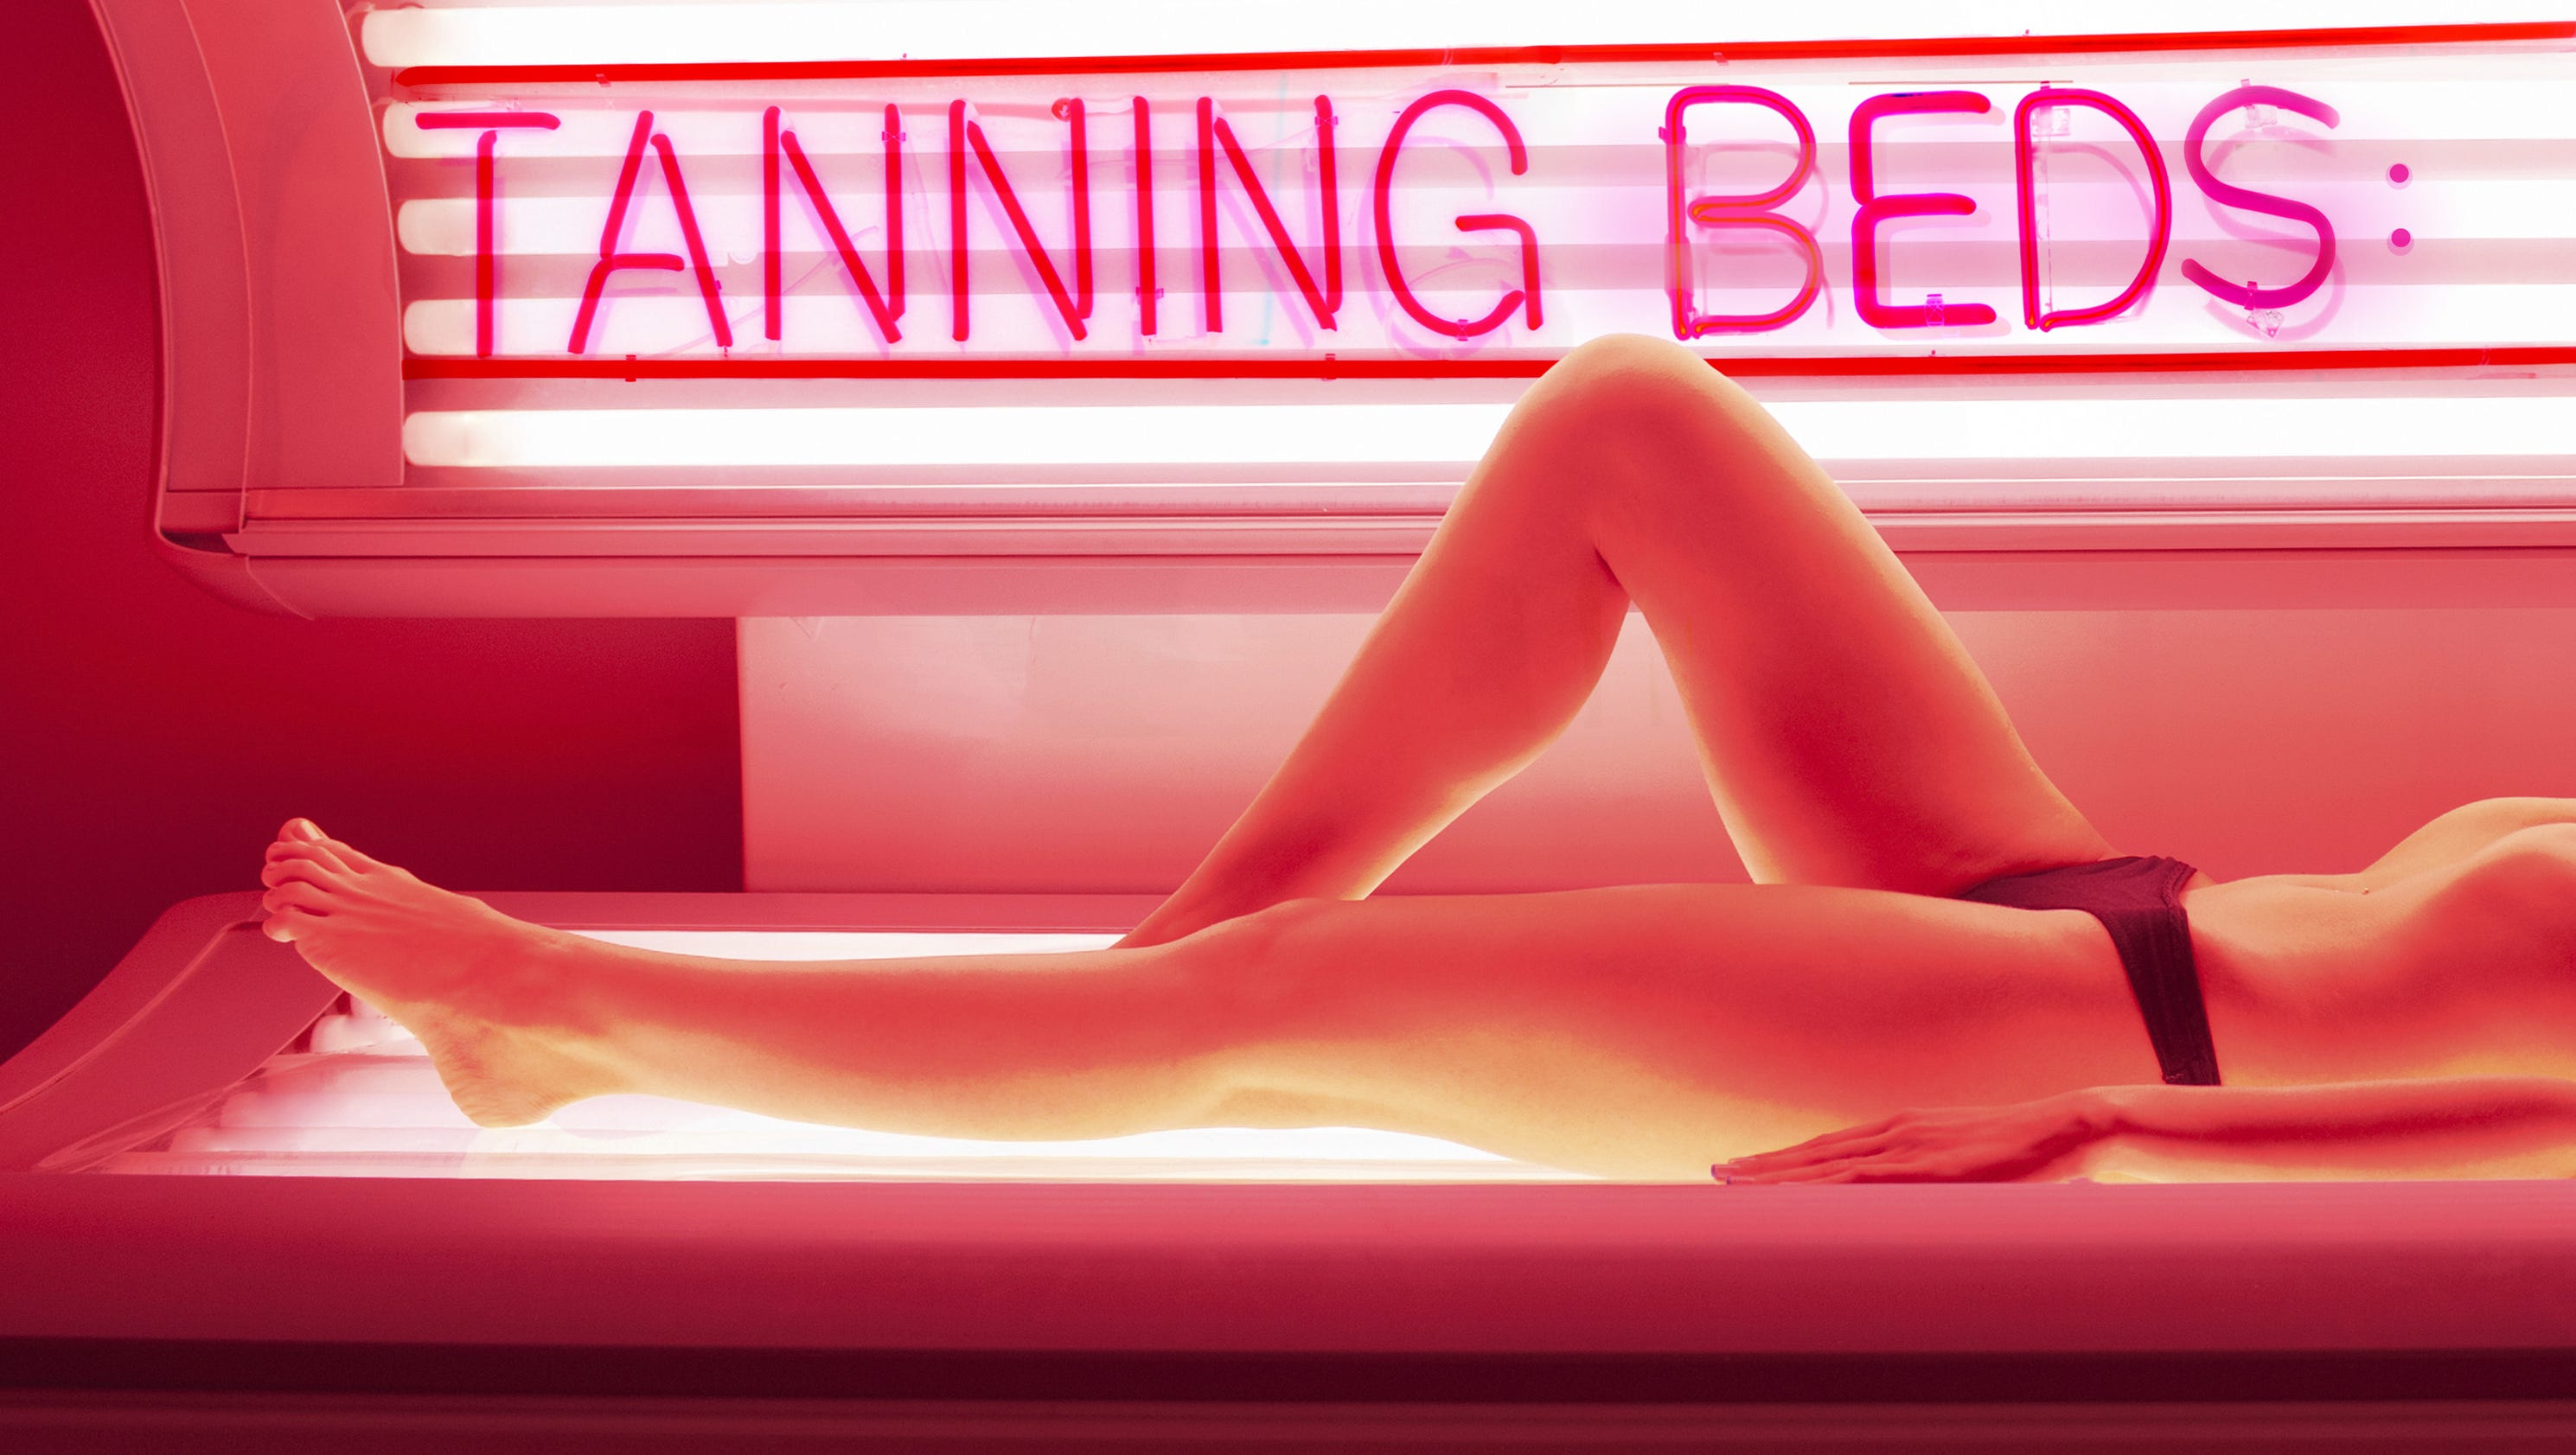 tanning and the risks of skin cancer A san diego personal injury attorney's blog about a new study that found uv-exposure from tanning beds raises the chance of getting skin cancer by 75%.